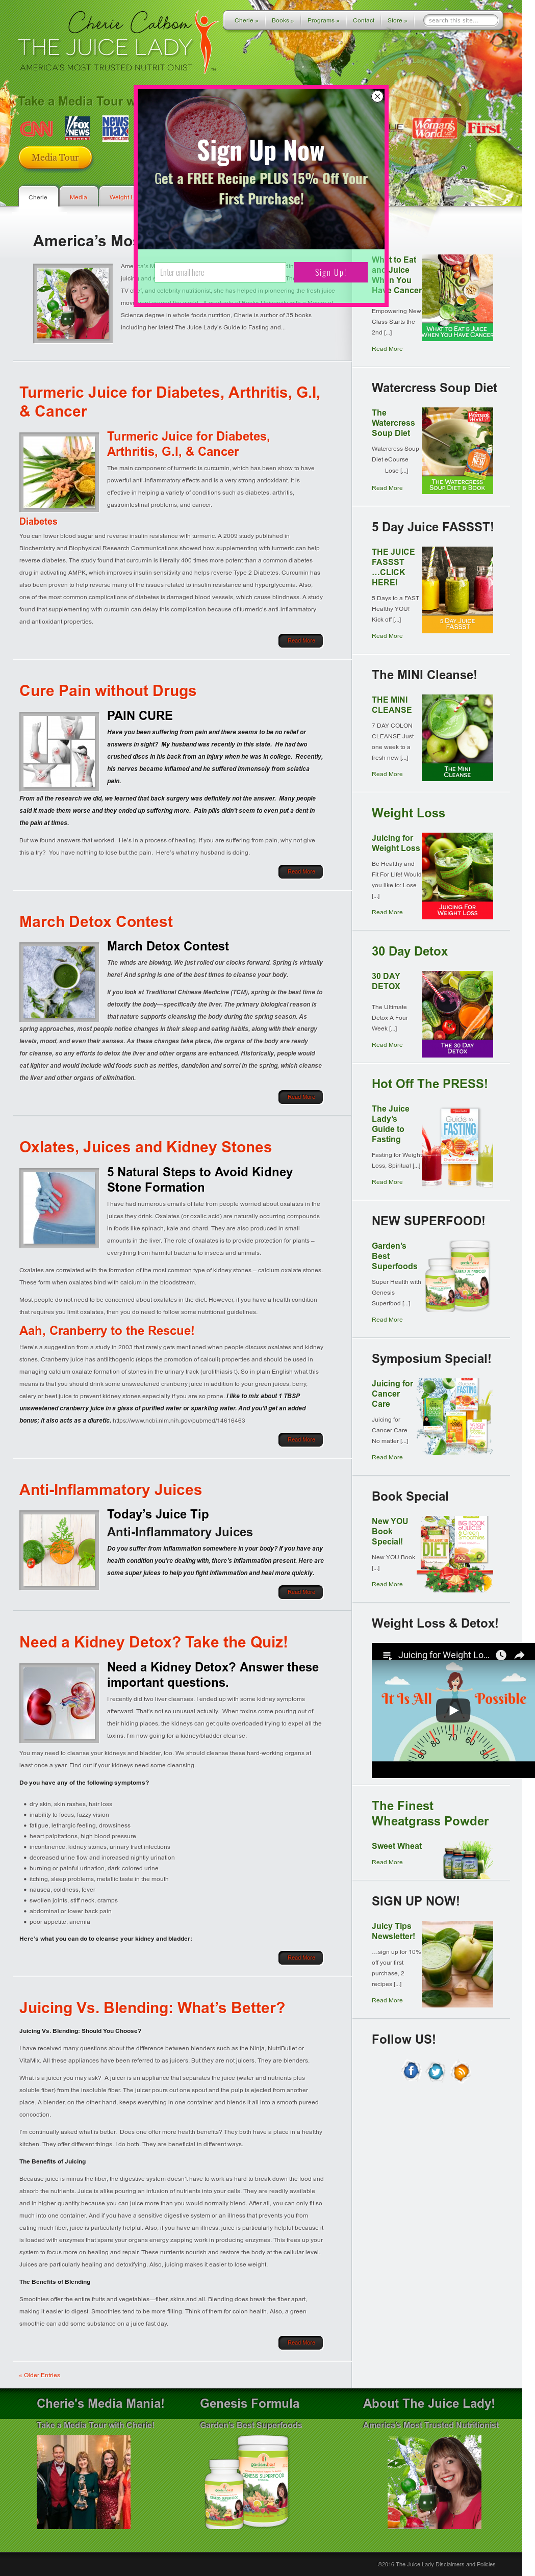 Juiceladycherie Competitors, Revenue and Employees - Owler Company